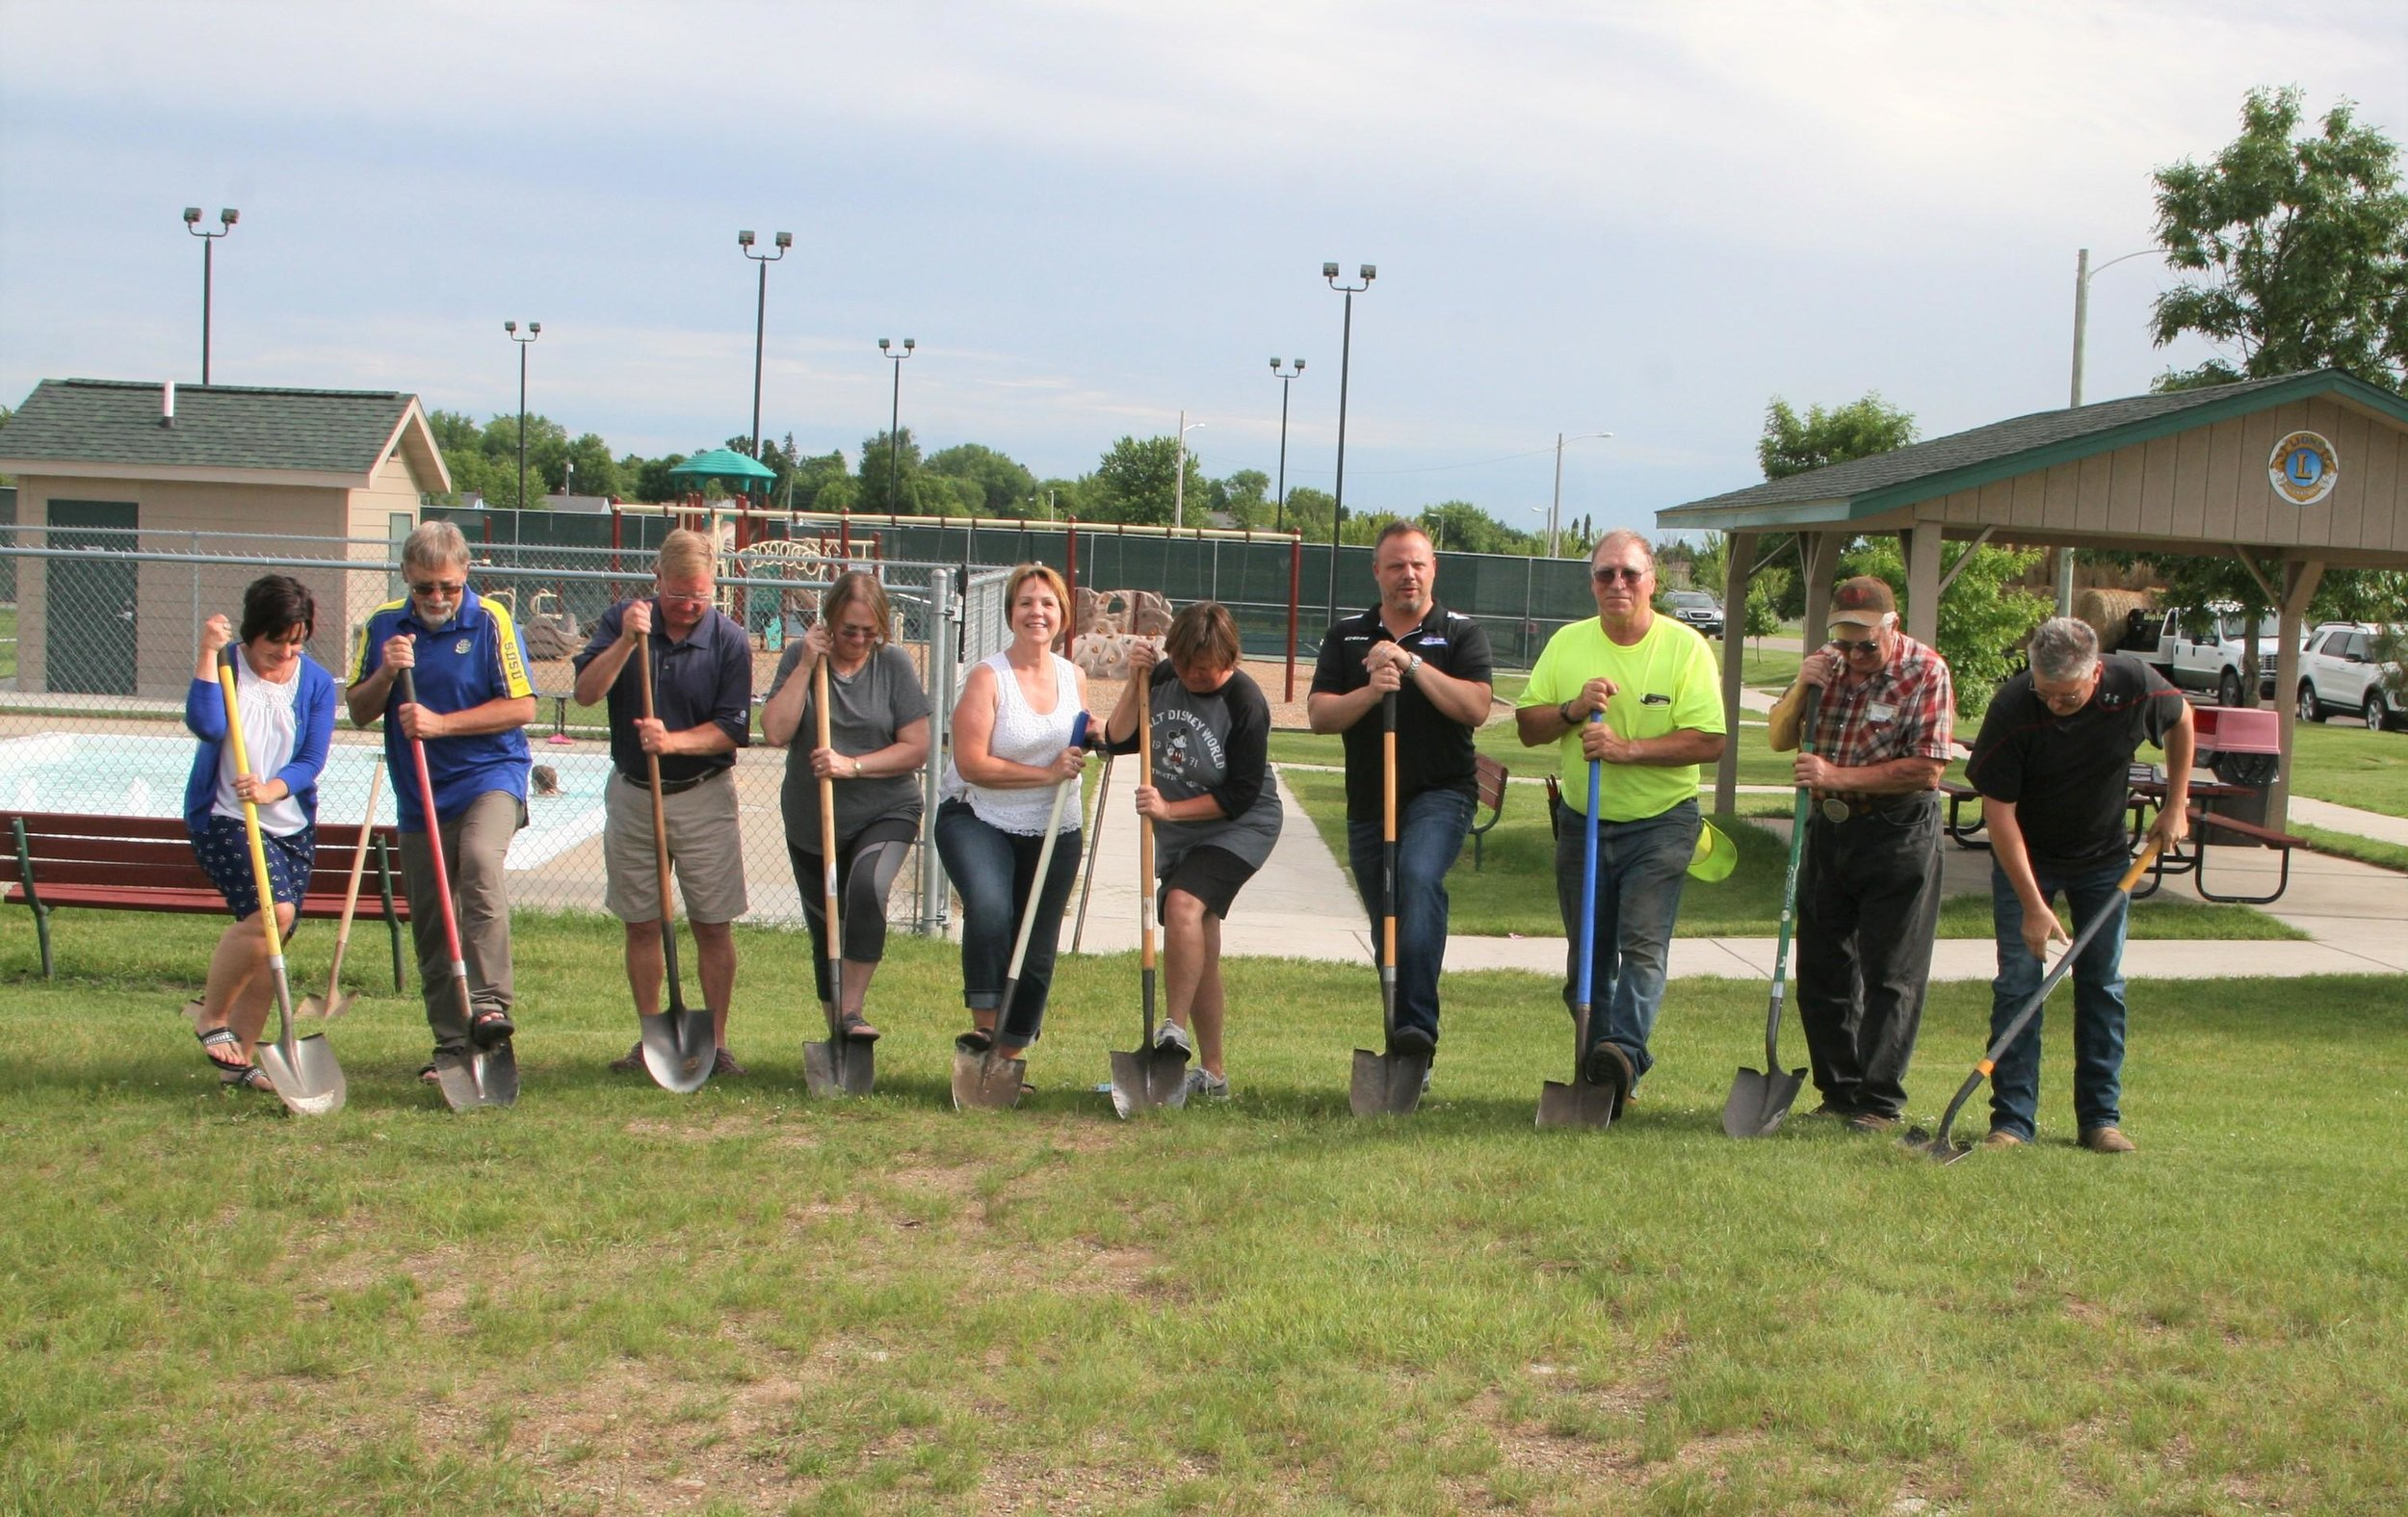 A group gathered to scratch the surface of the future splash pad in the southwest park next to the wading pool. They included Janette Bower, George Deiss, Dean Krogstad, Sandy Black, Deb Wiese, Sara Ross, Mark Lunde, Mike Pete, Larry DeWald and Dan Kovar. With the work to begin soon, completion could be done in August. Michael Johnson/Pioneer Journal